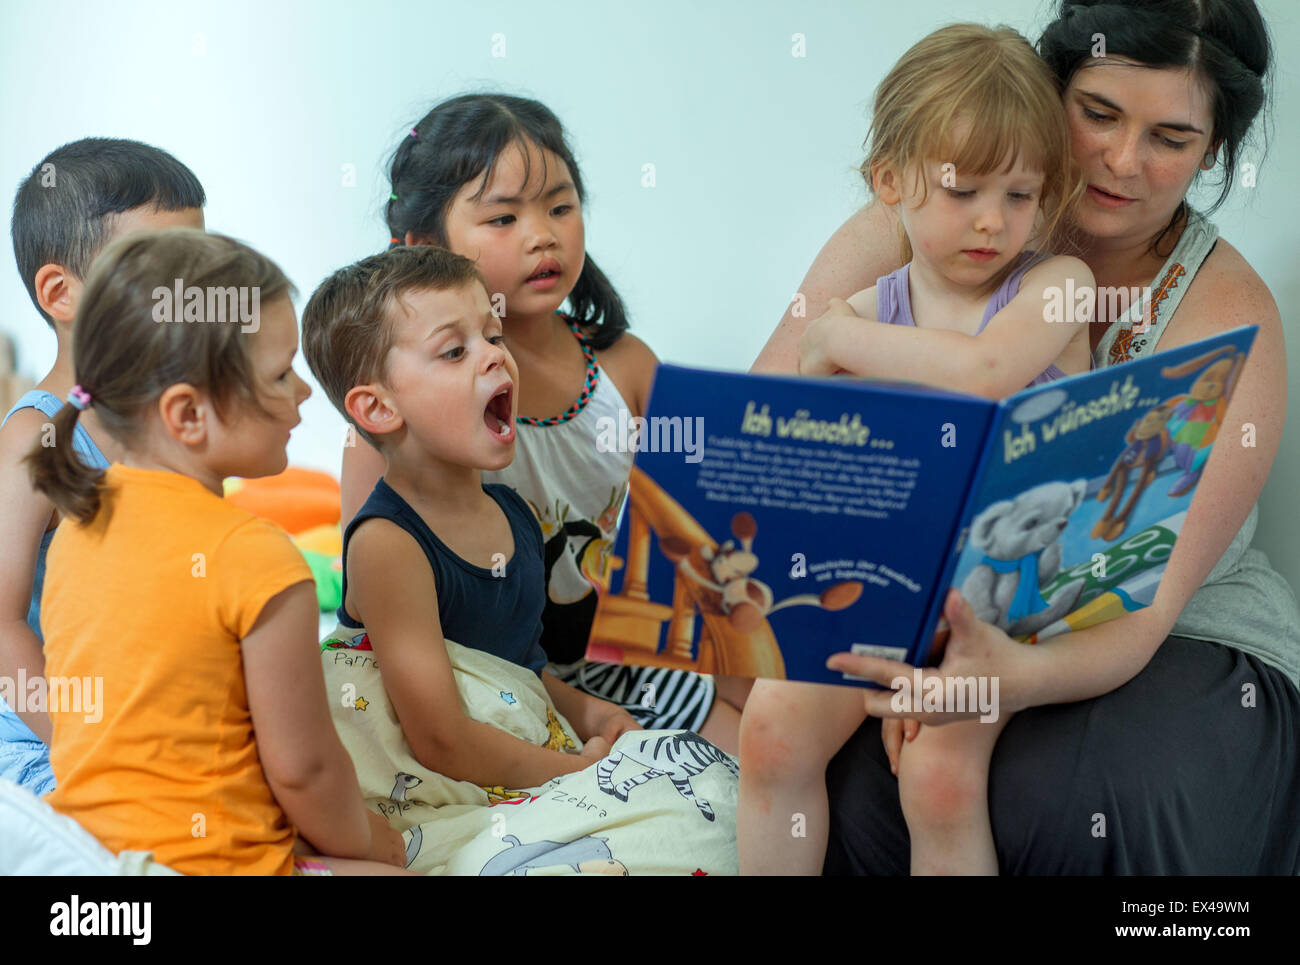 Schwerin, Germany. 06th July, 2015. Pre-school teacher Catherina Meyer reads a story to the children Lea Sophie - Stock Image